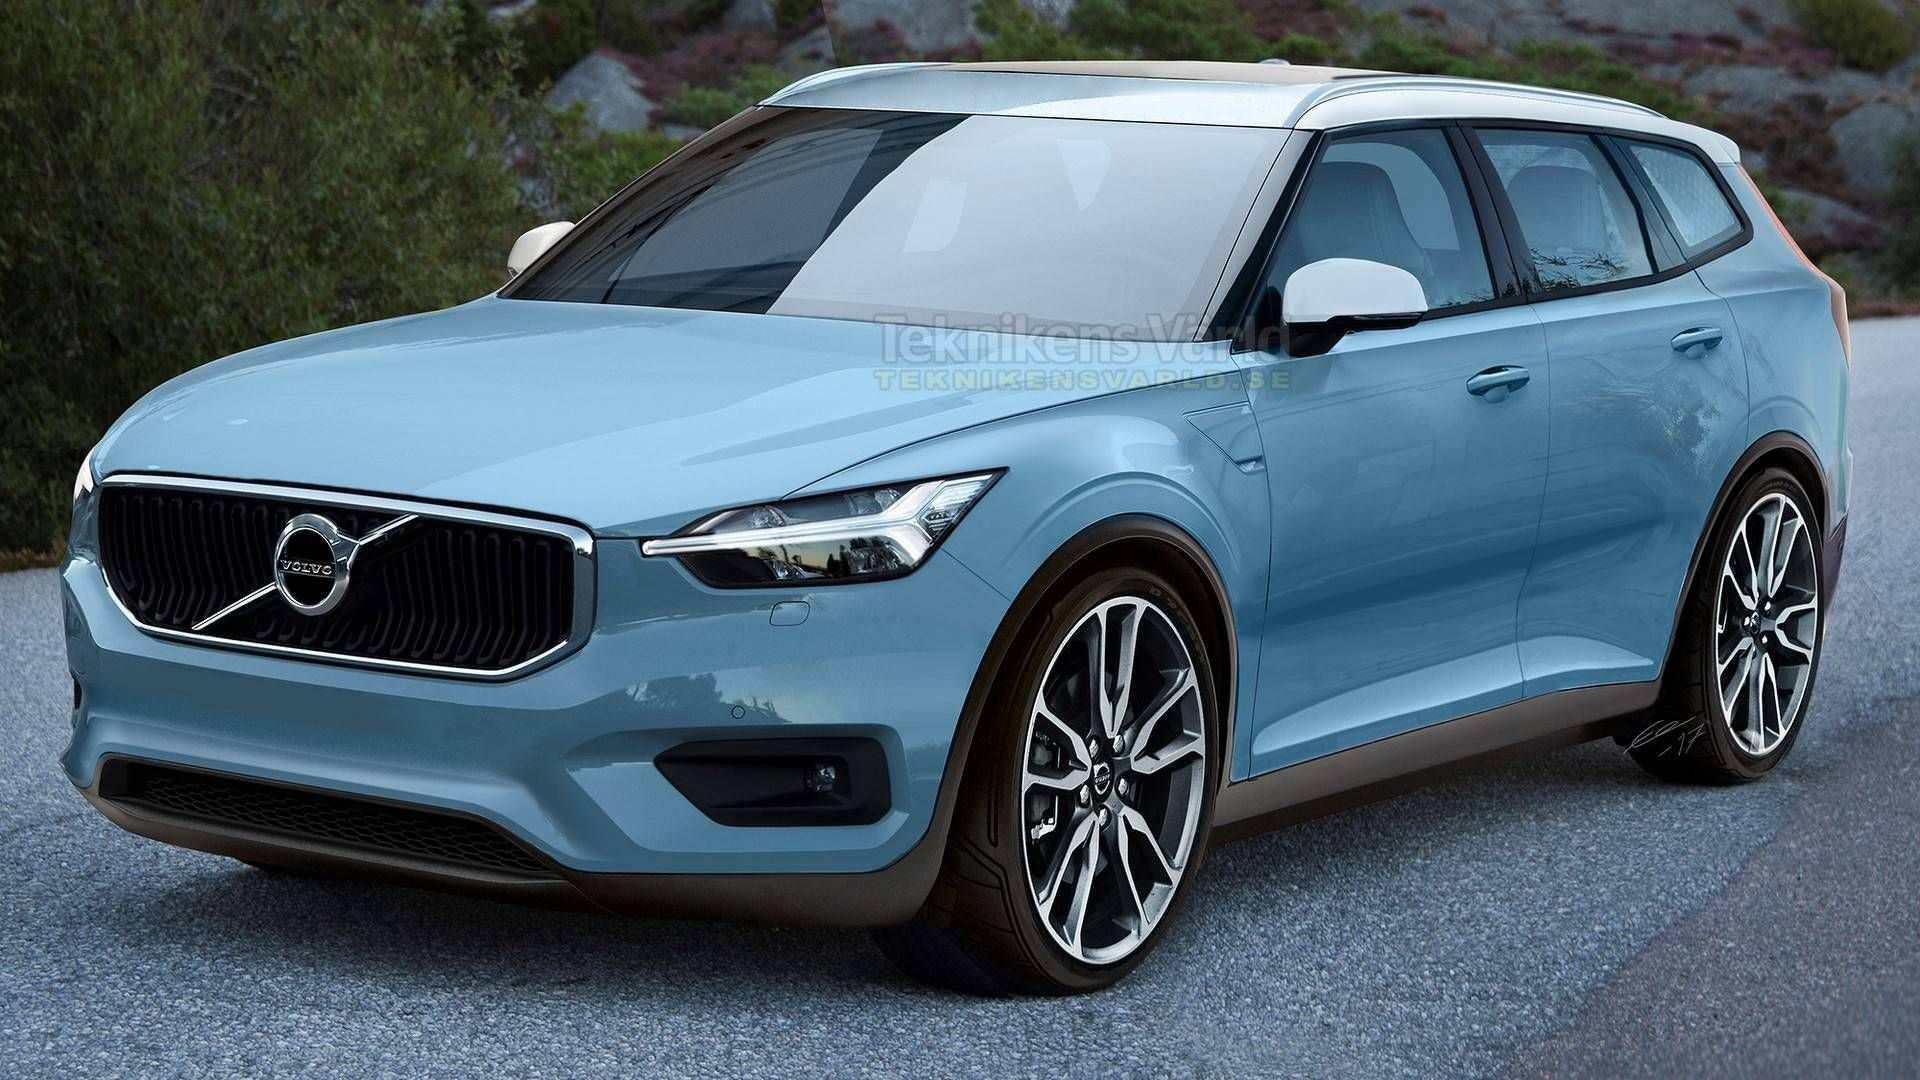 77 Best Review New Volvo V40 2019 Release Date Concept Redesign And Review Spy Shoot by New Volvo V40 2019 Release Date Concept Redesign And Review